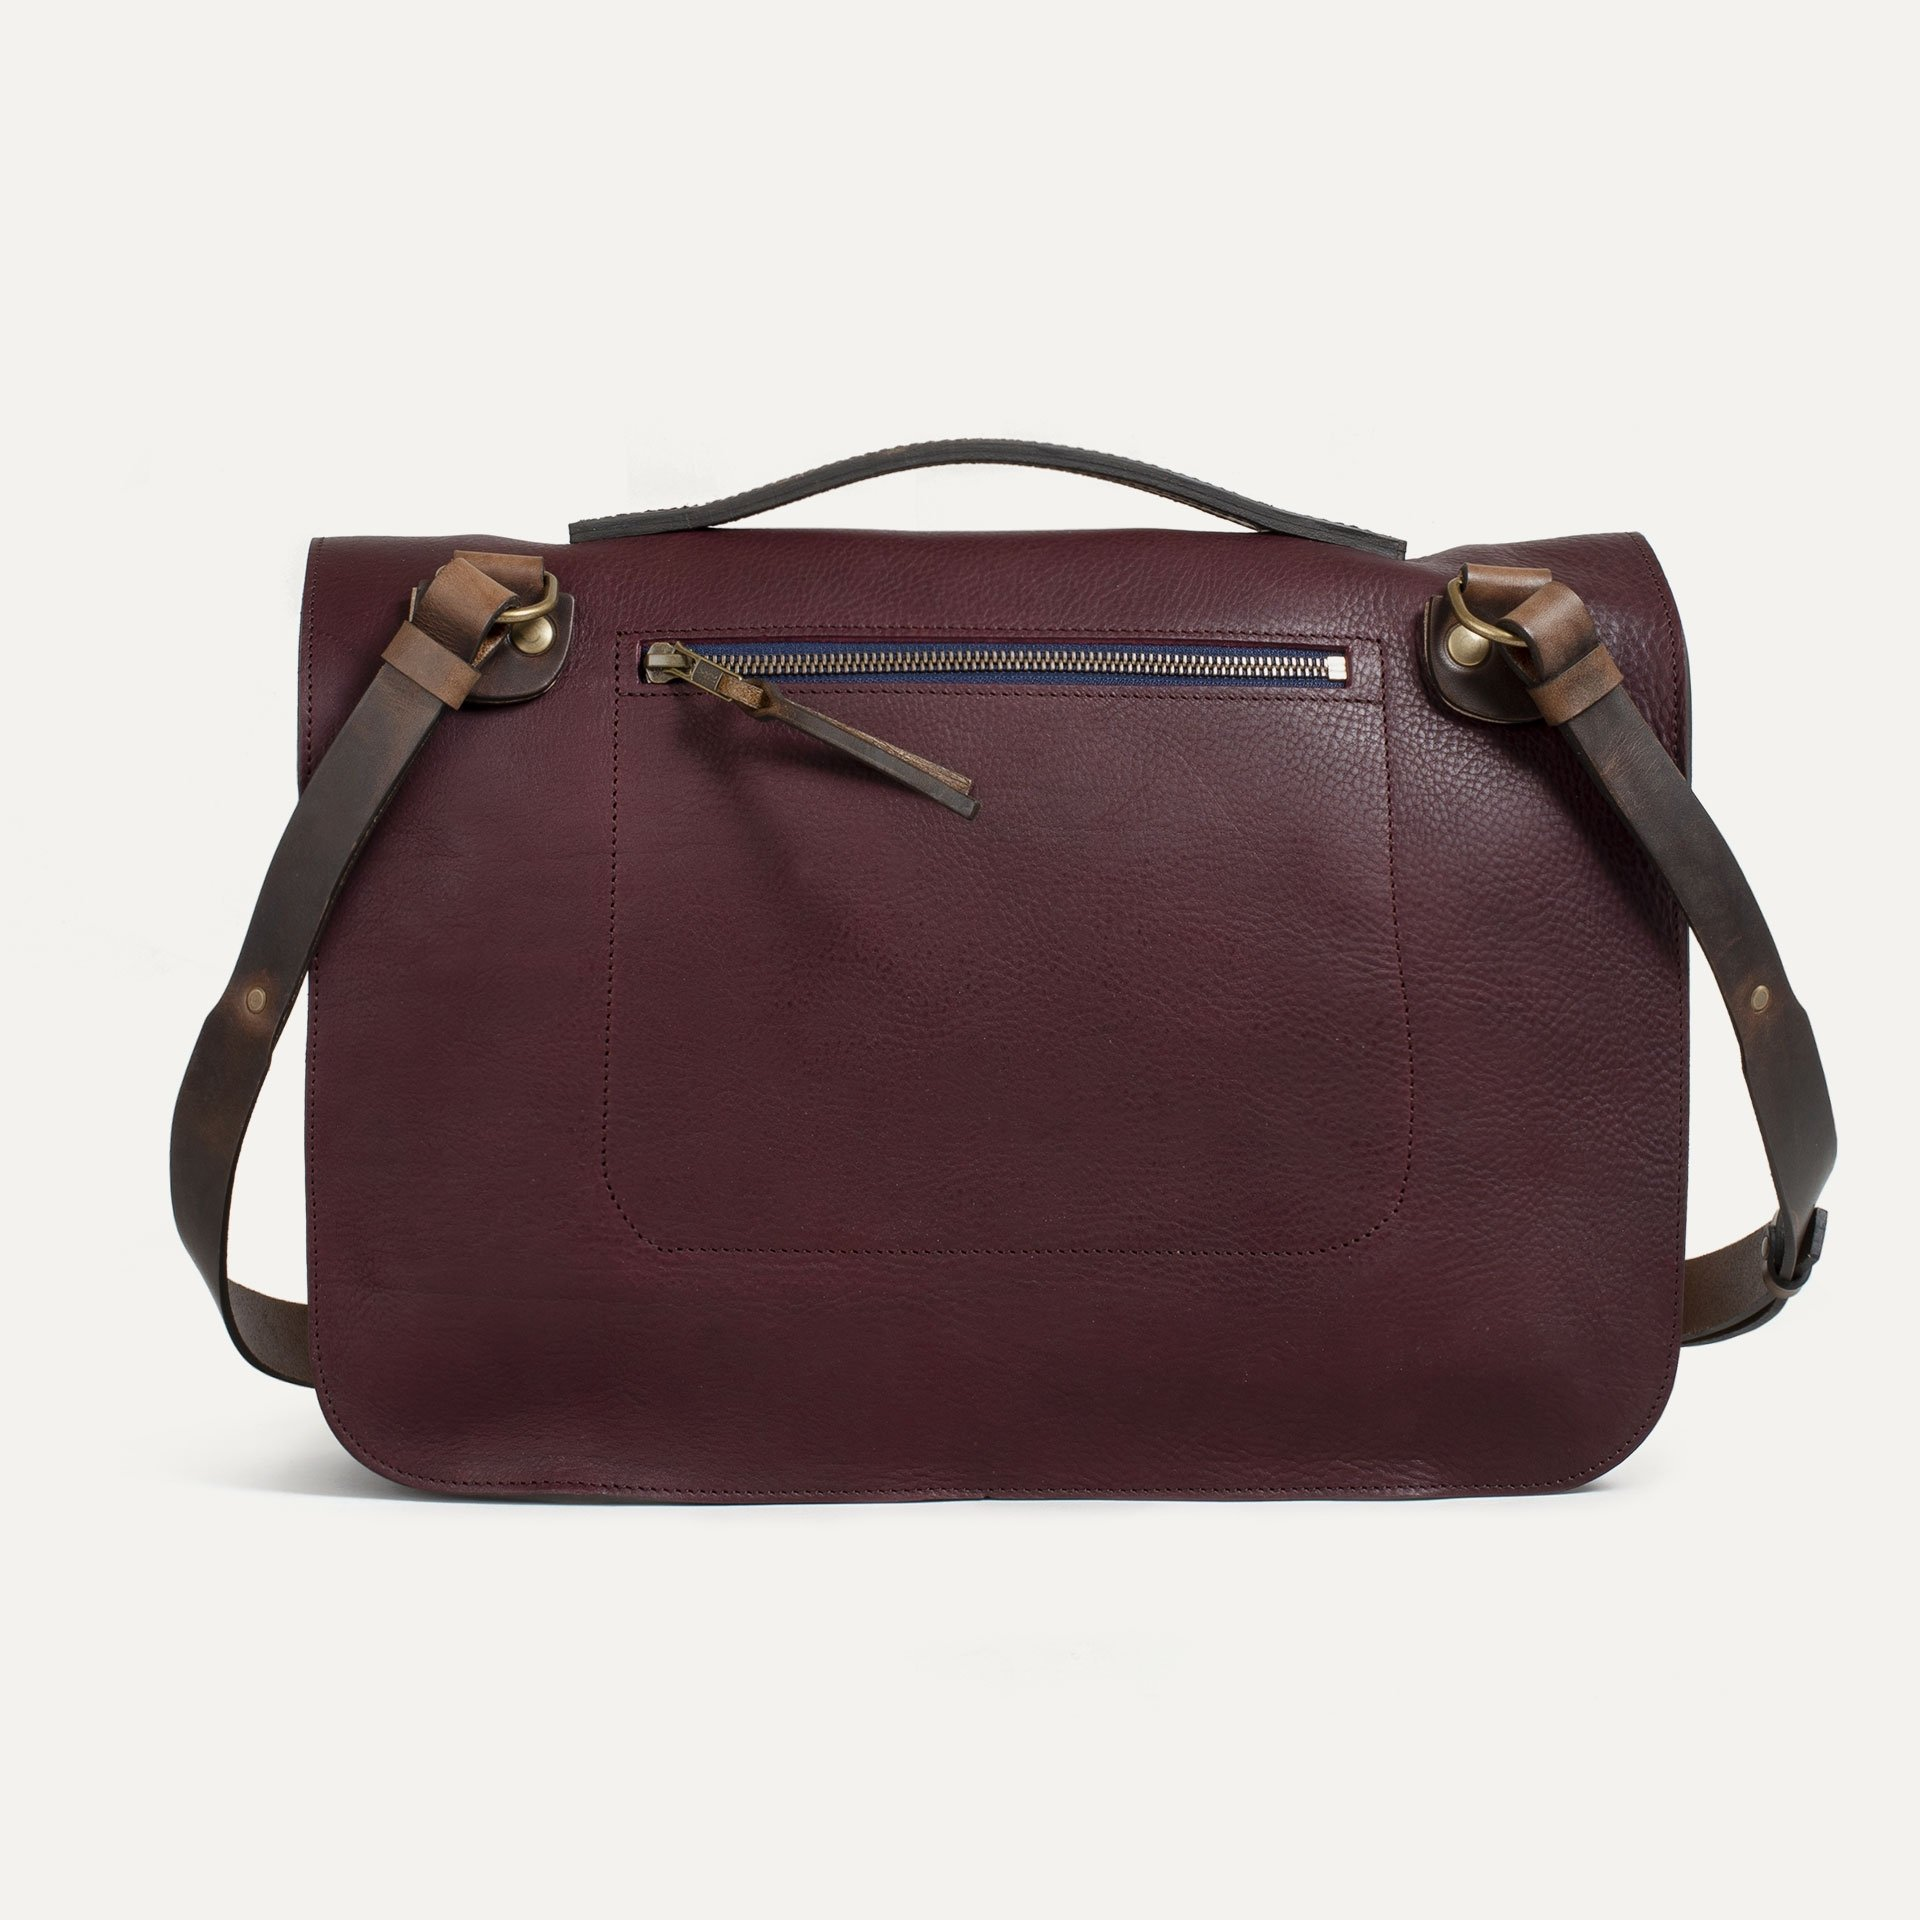 Groucho Leather Satchel - Peat / E Pure (image n°2)